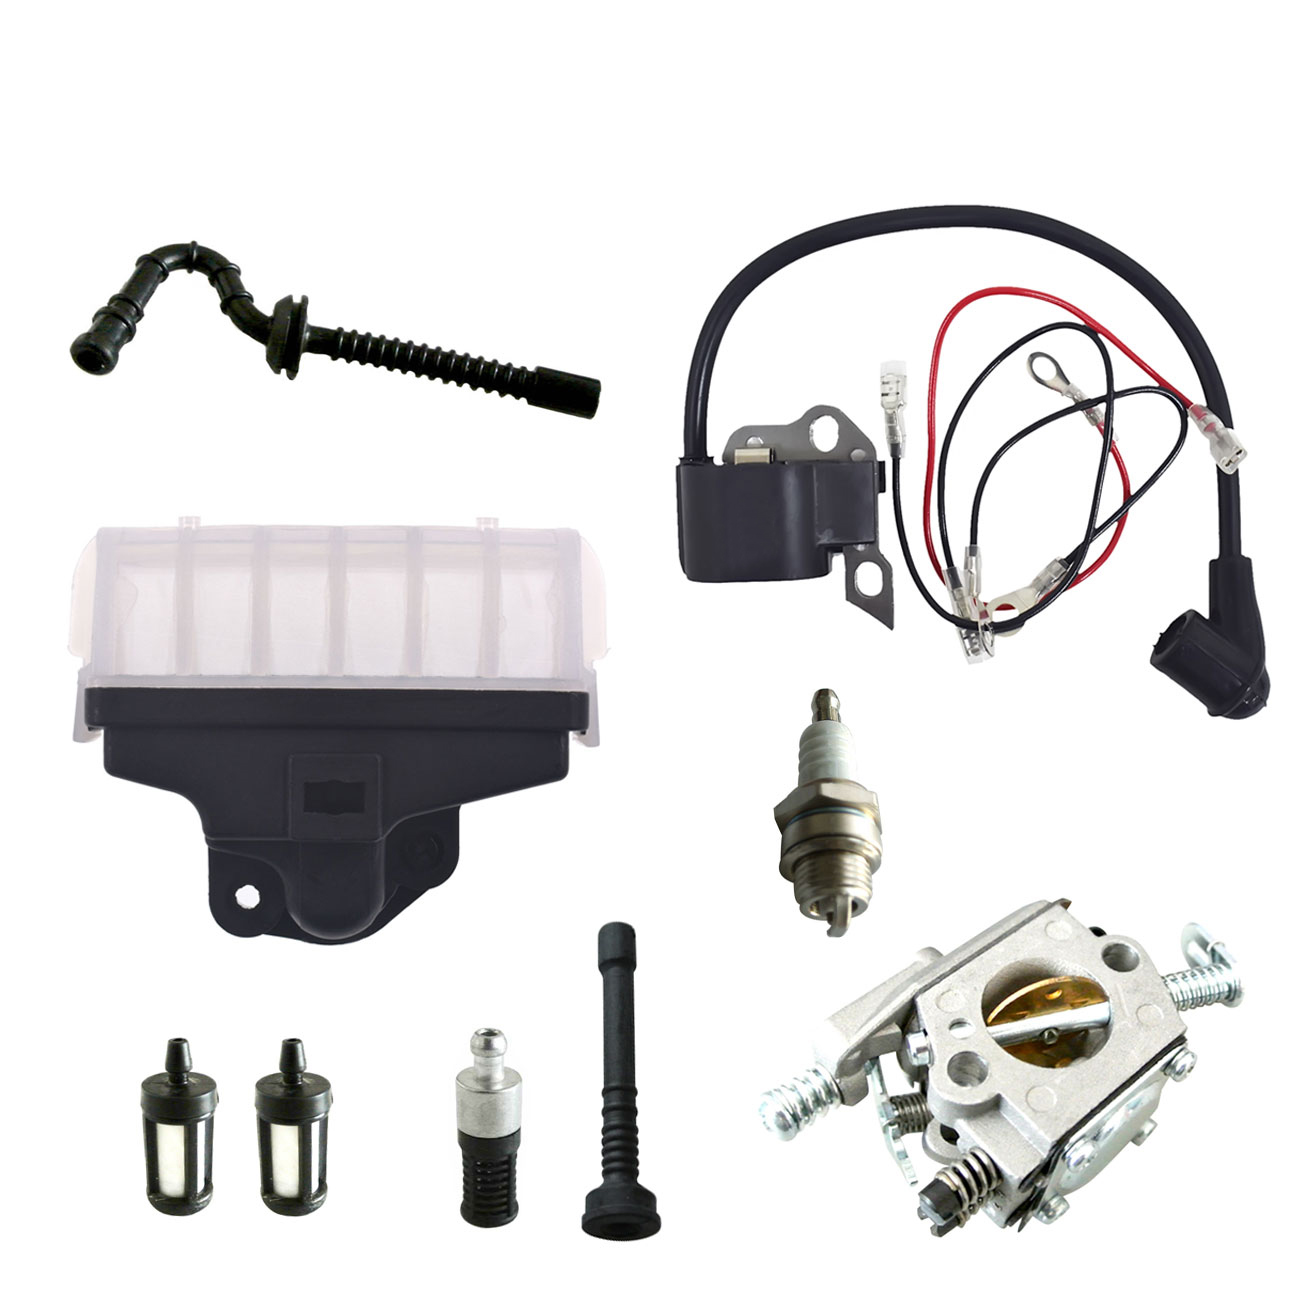 Image 3 - Ignition Coil Carburetor Kit Spark Plug For STIHL Chainsaw 021 023 025 MS210 MS230 MS250-in Chainsaws from Tools